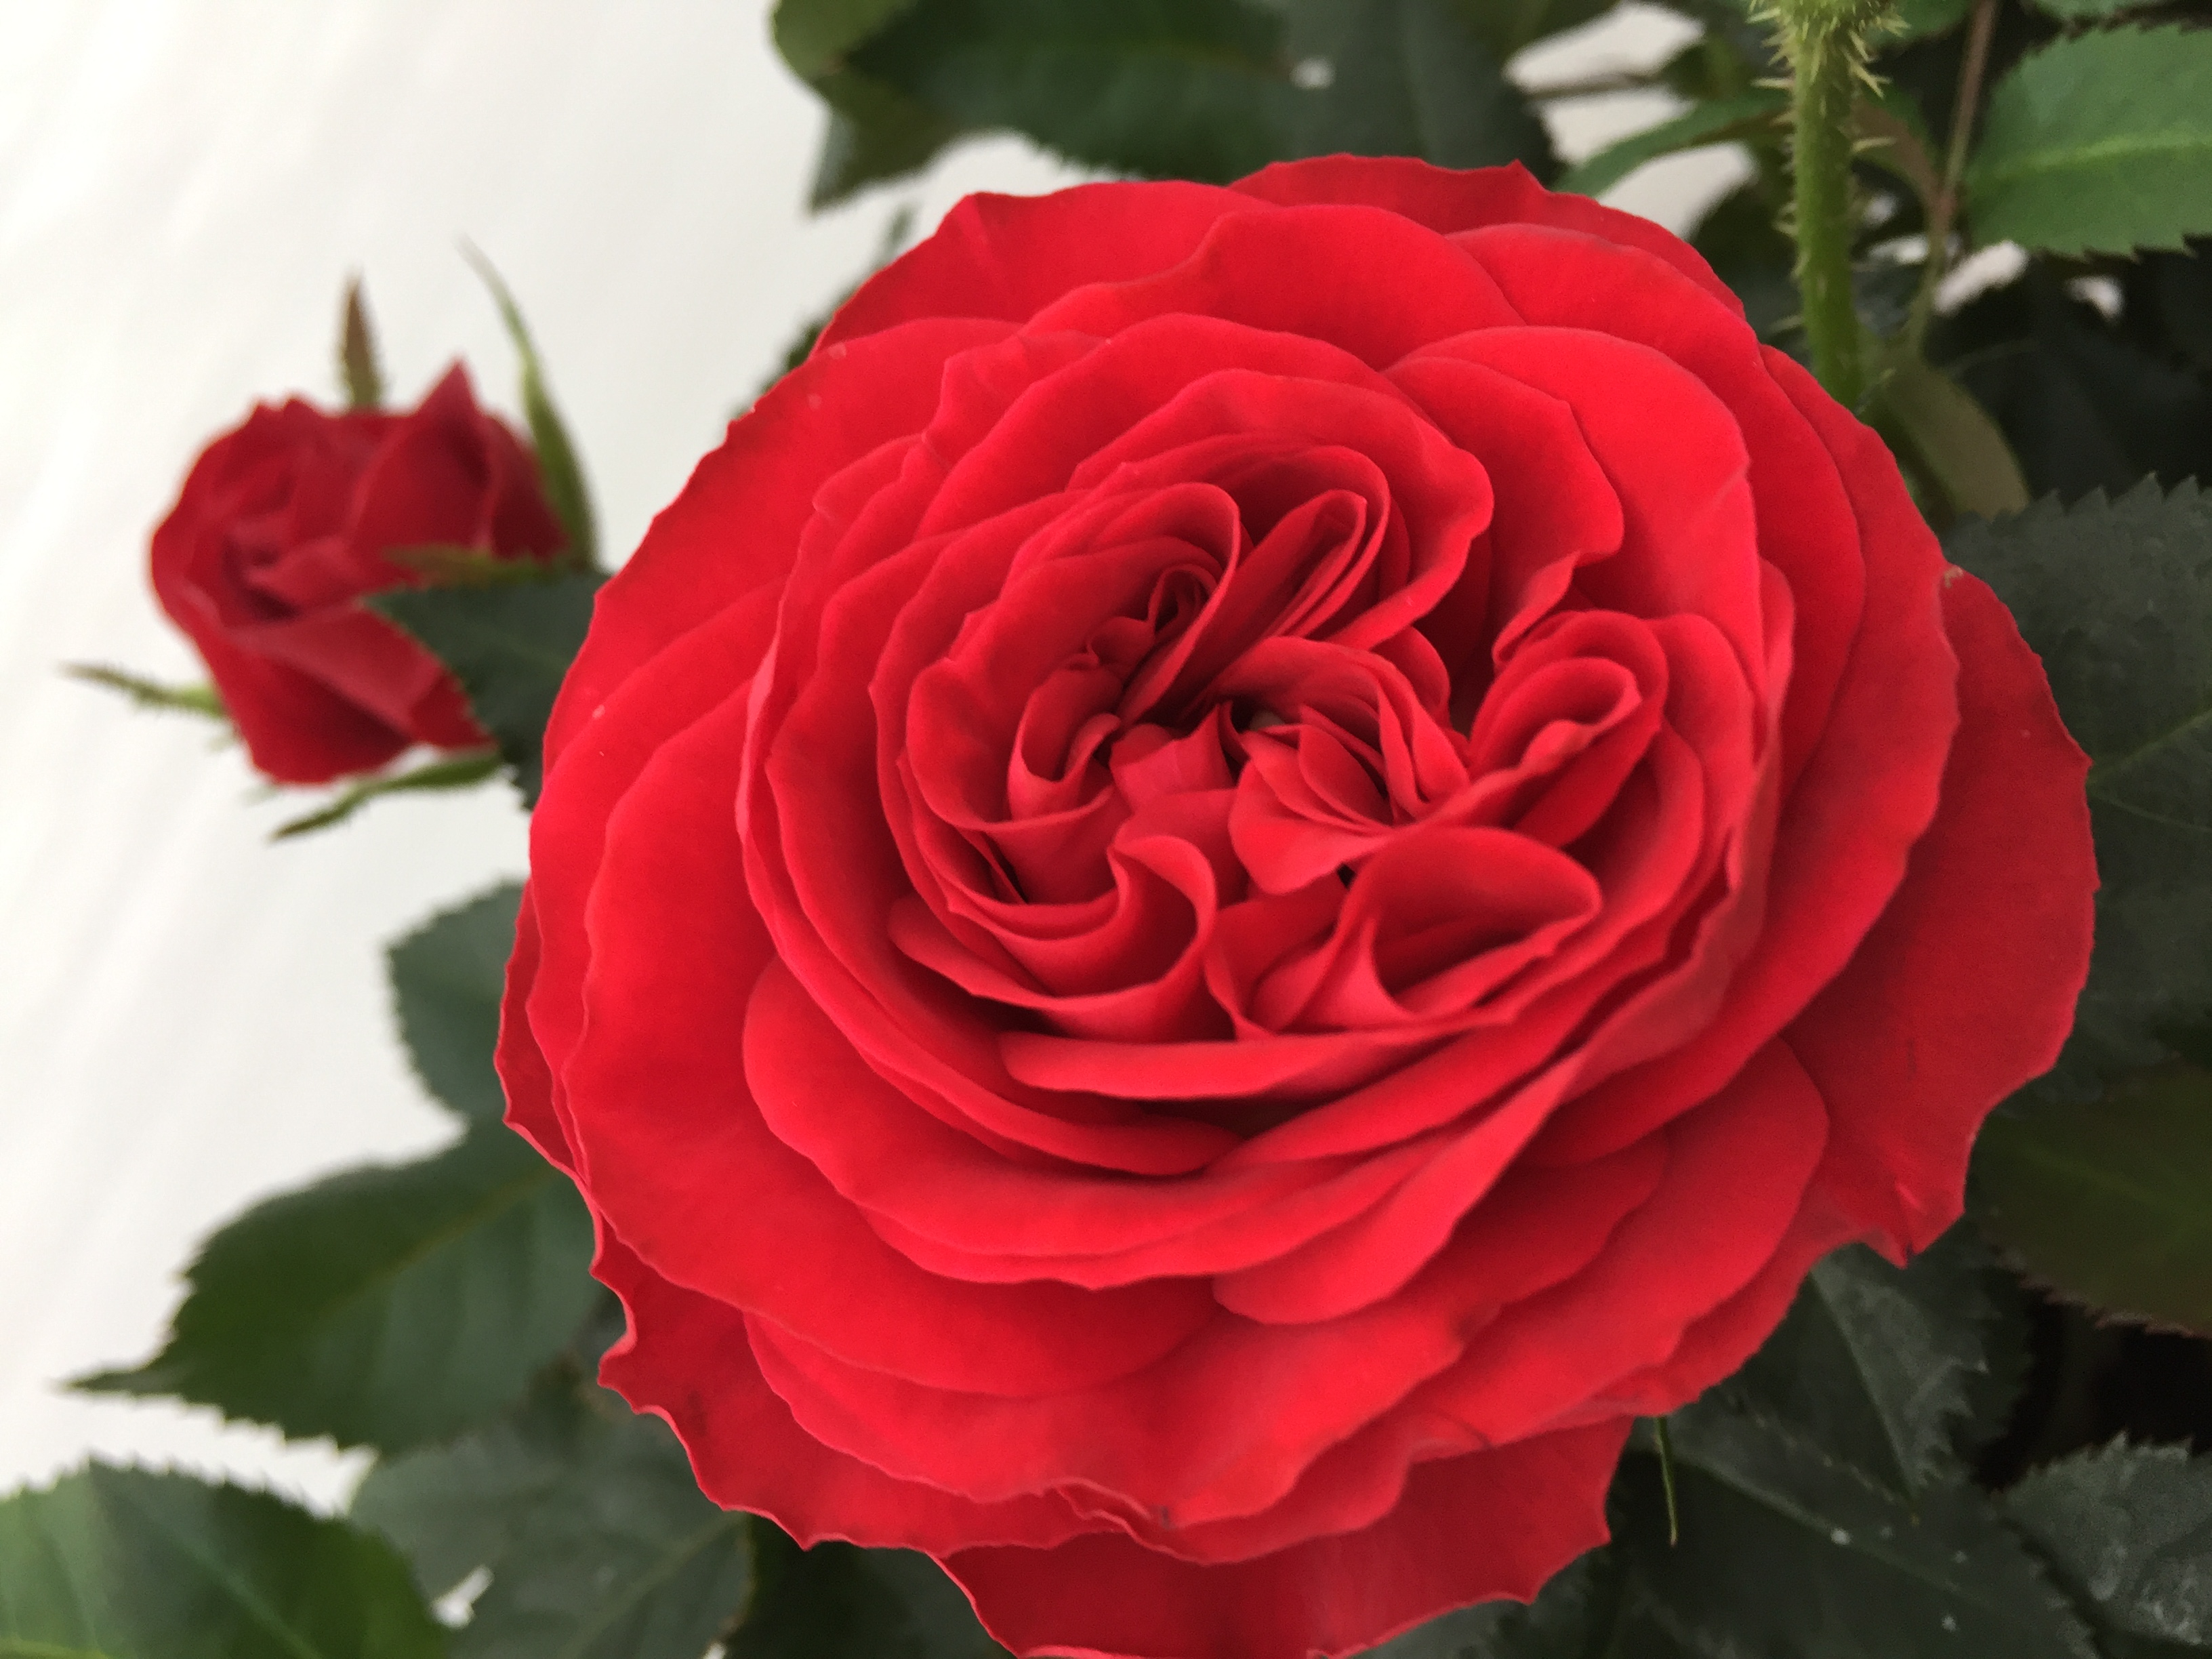 6 Years Ago The Infinity Rose Was Presented For Very First Time It Original White And At This Danish Breeder Rosa